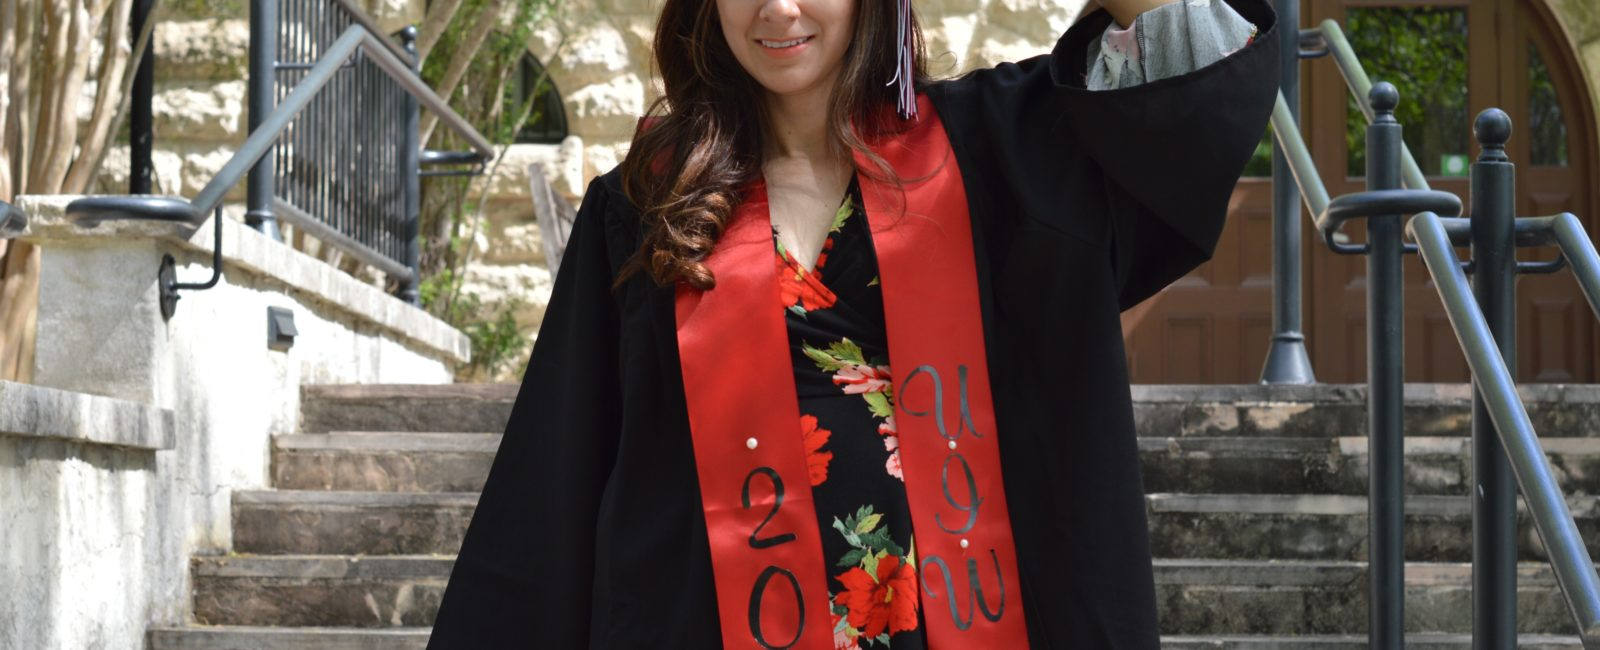 Graduating From UIW 2017 + What To Wear With Your Cap & Gown